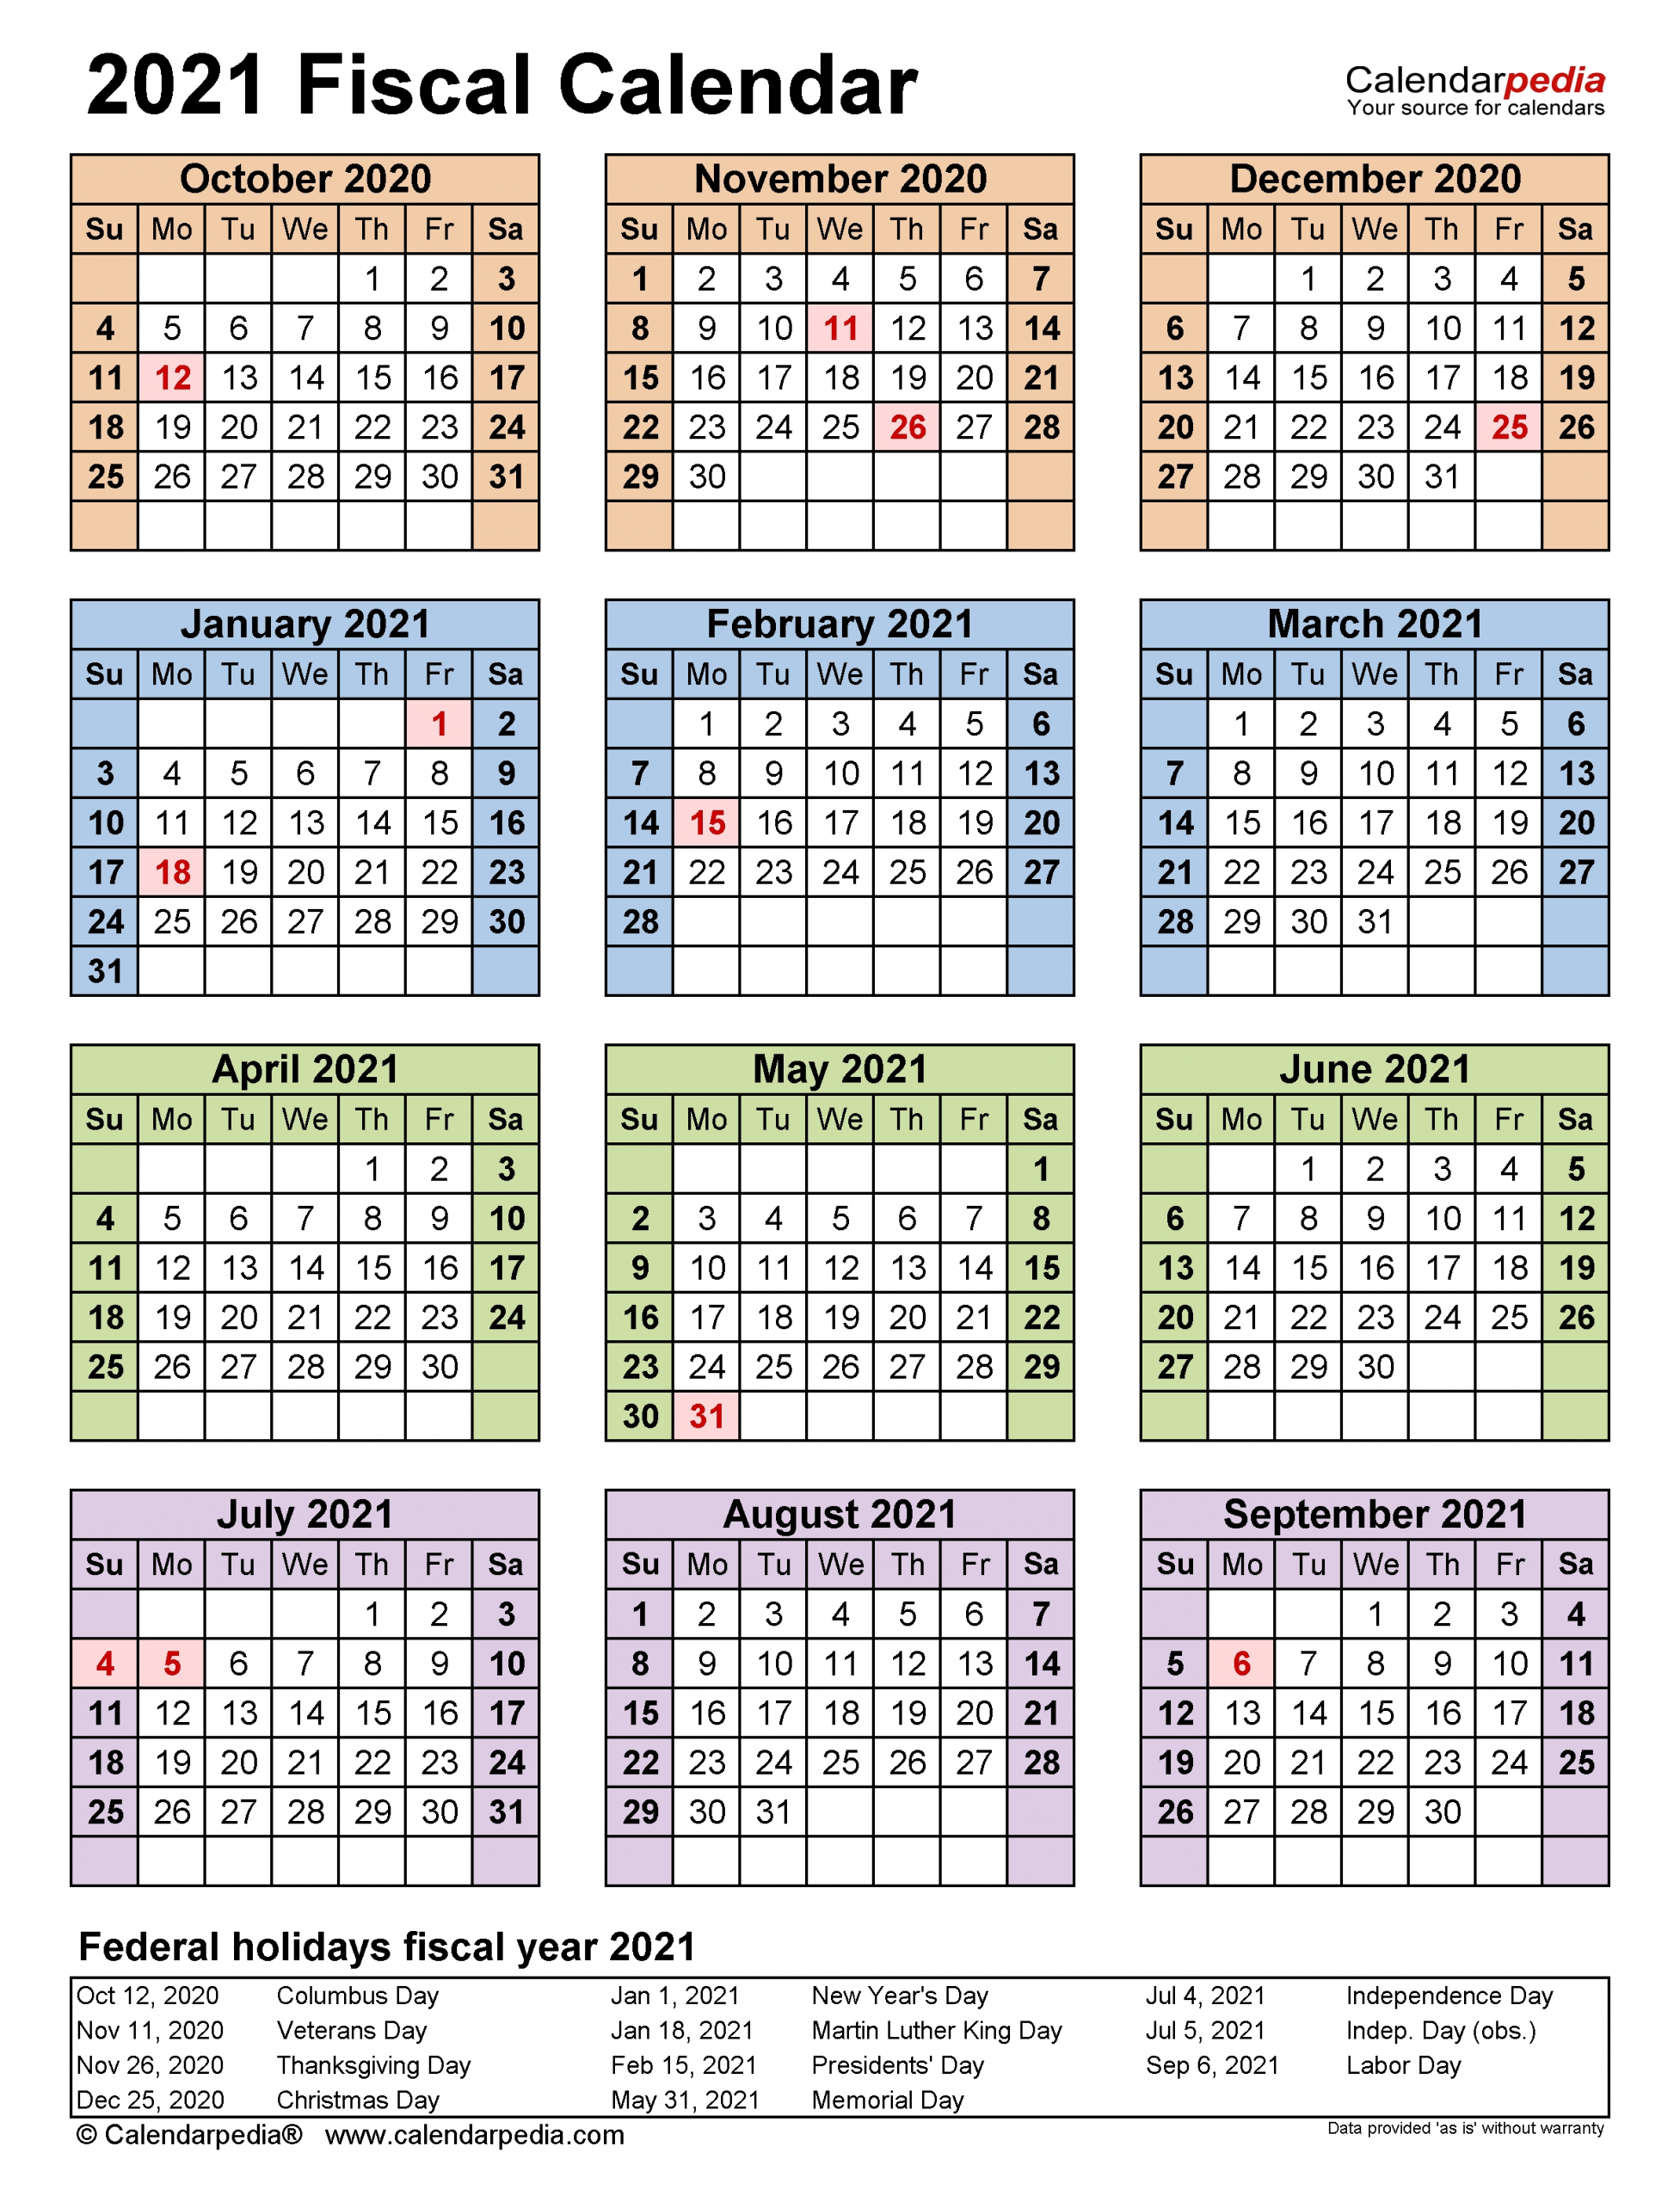 Get How Many Weeks Into The 2021 Finacial Year